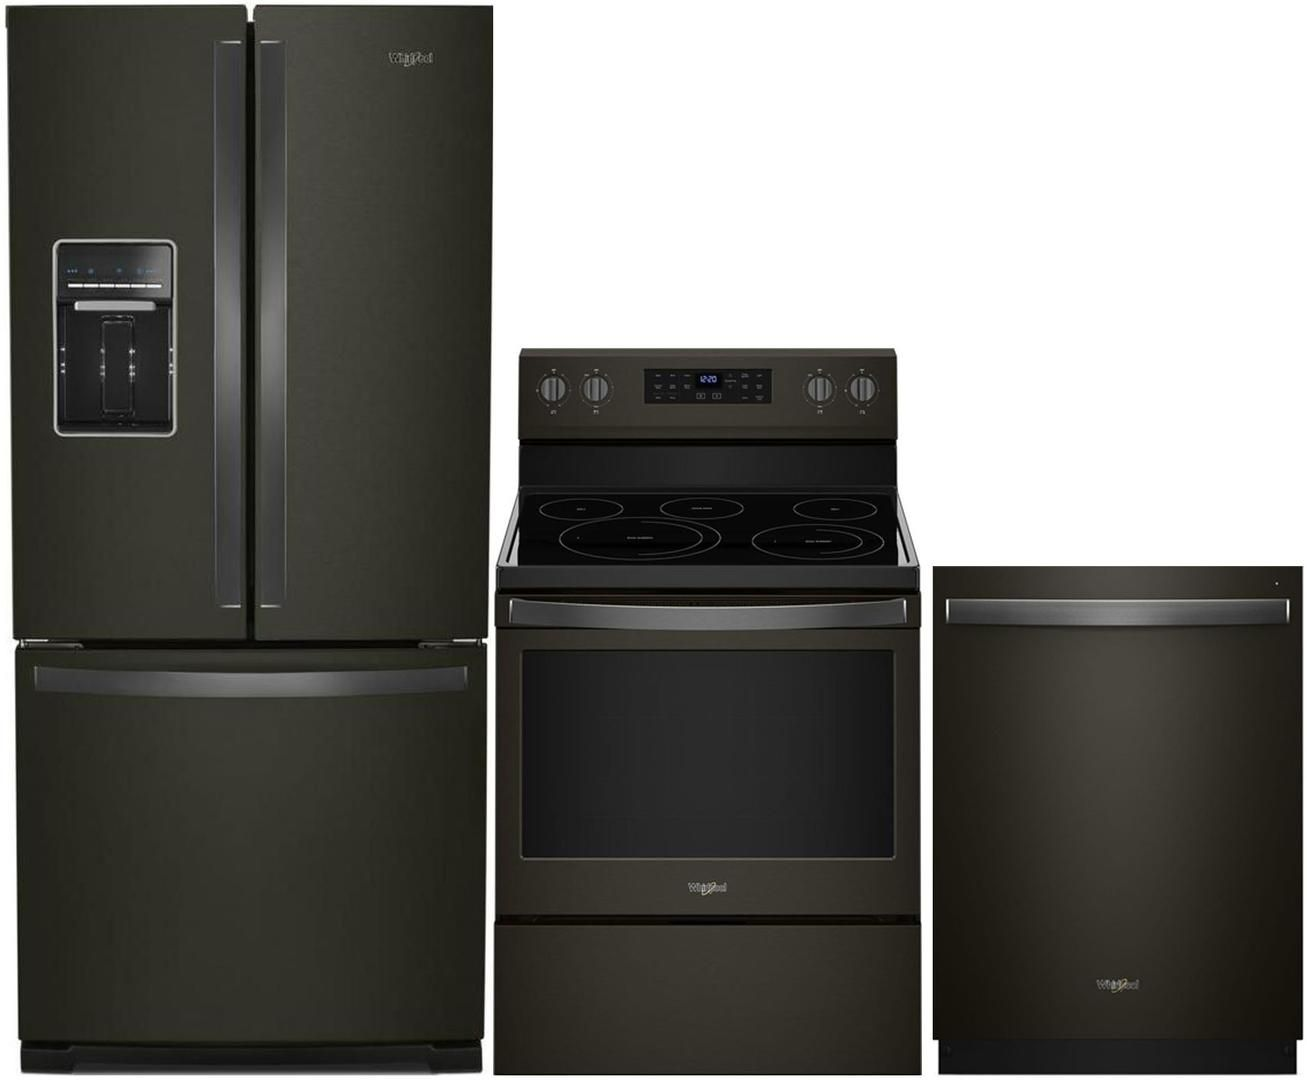 Whirlpool 995552 2 099 00 Kitchen Appliance Packages Stainless Steel Kitchen Appliances Black Stainless Steel Kitchen